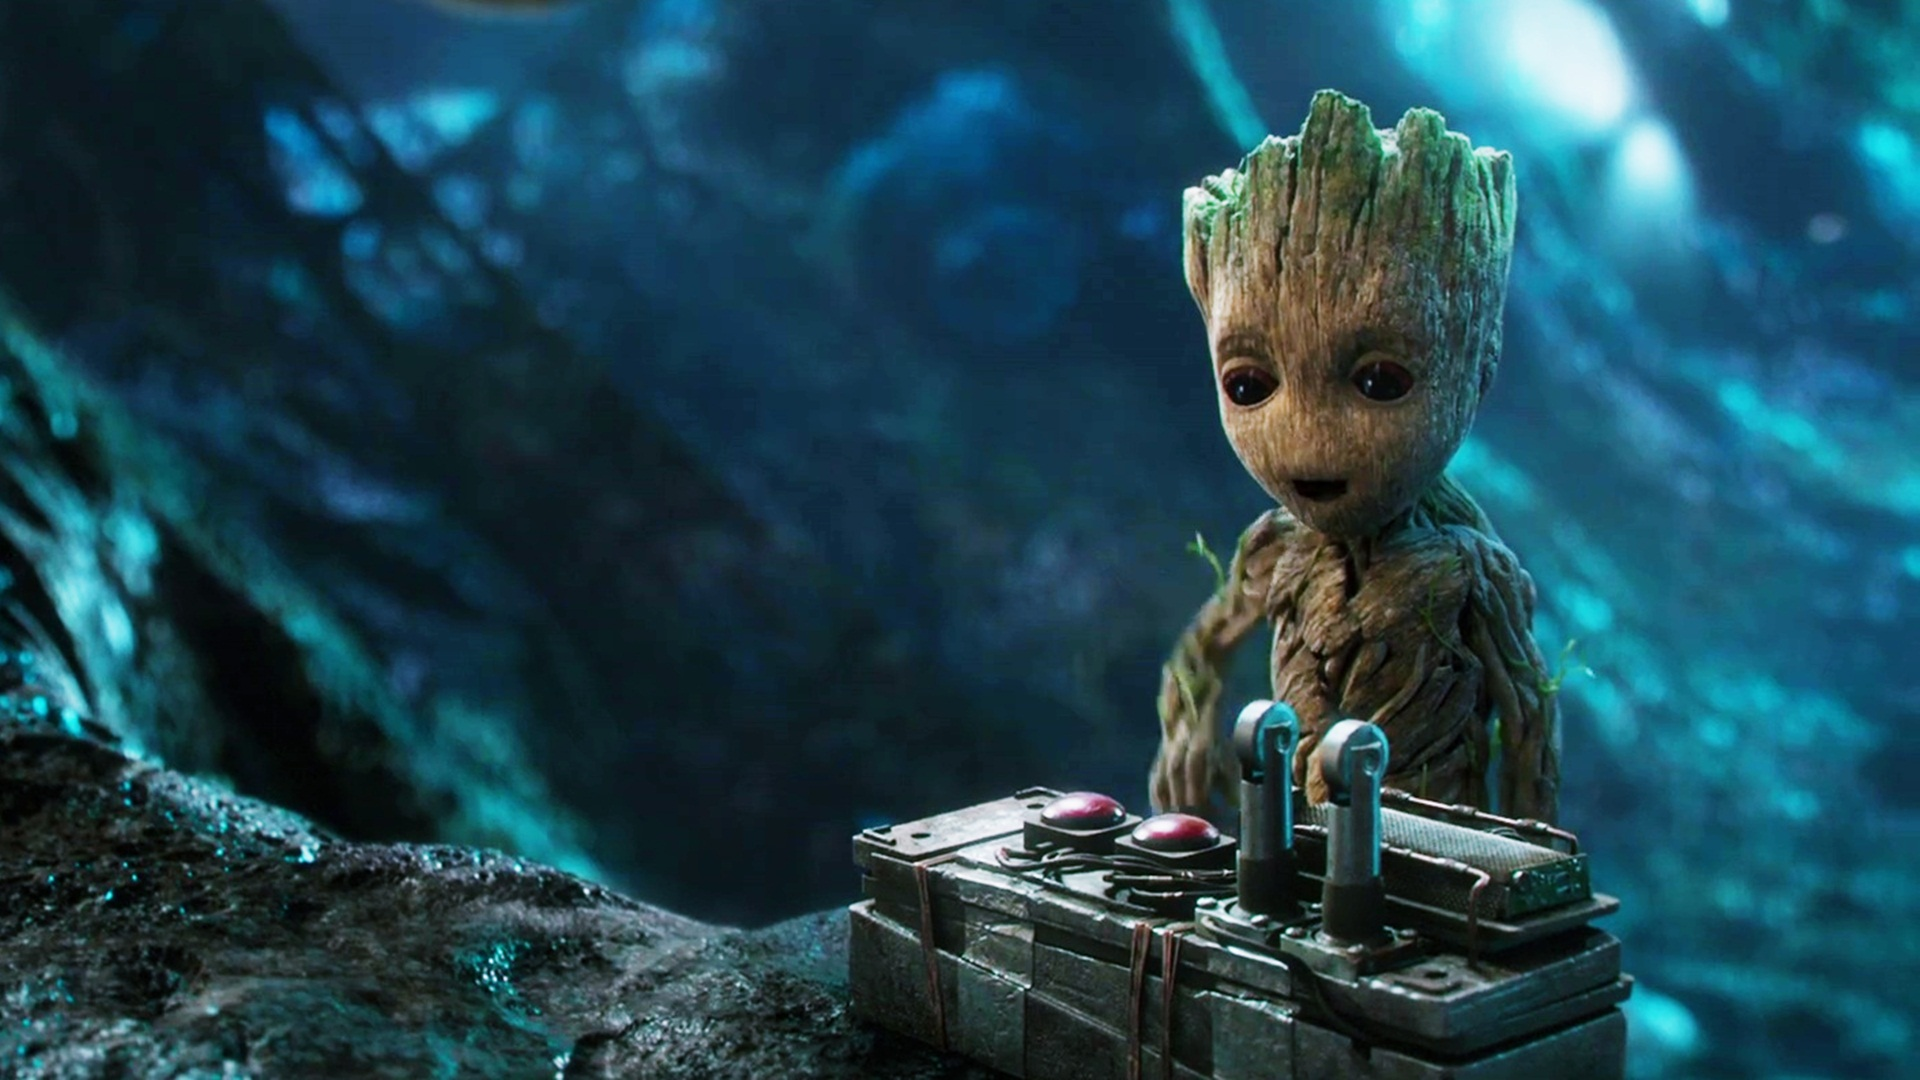 Groot Wallpapers (81 Wallpapers)  Wallpapers For Desktop